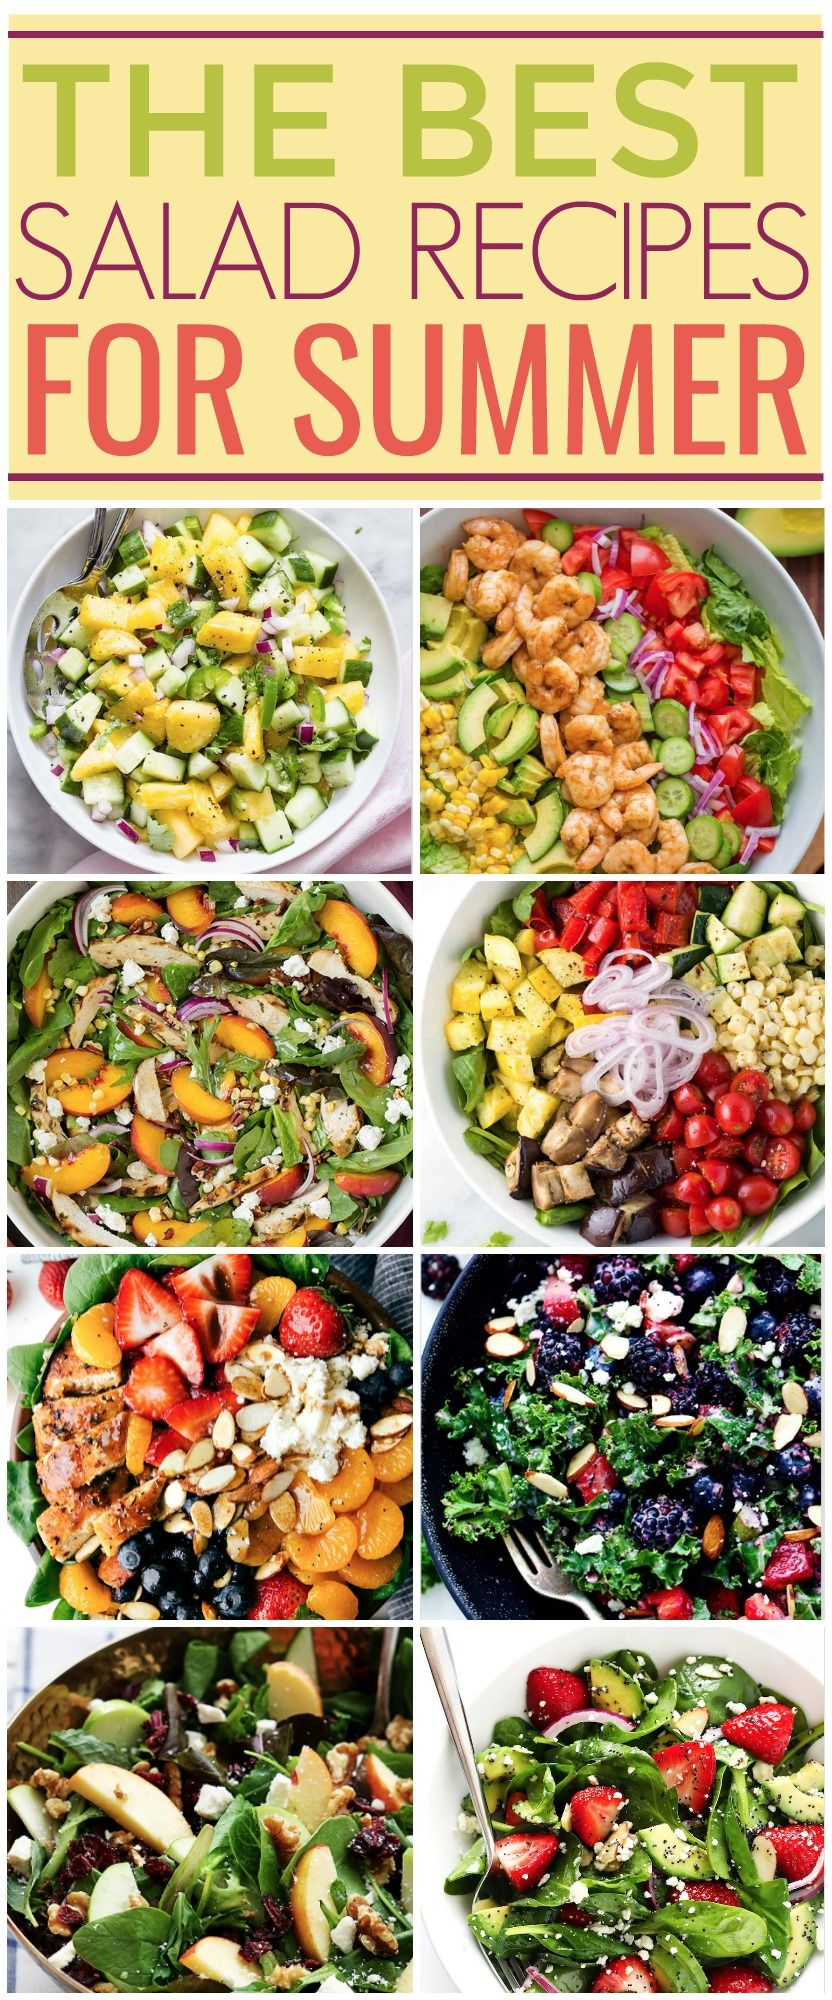 The Best Salad Recipes For Summer Best Salad Recipes Summer Salad Recipes Salad Recipes